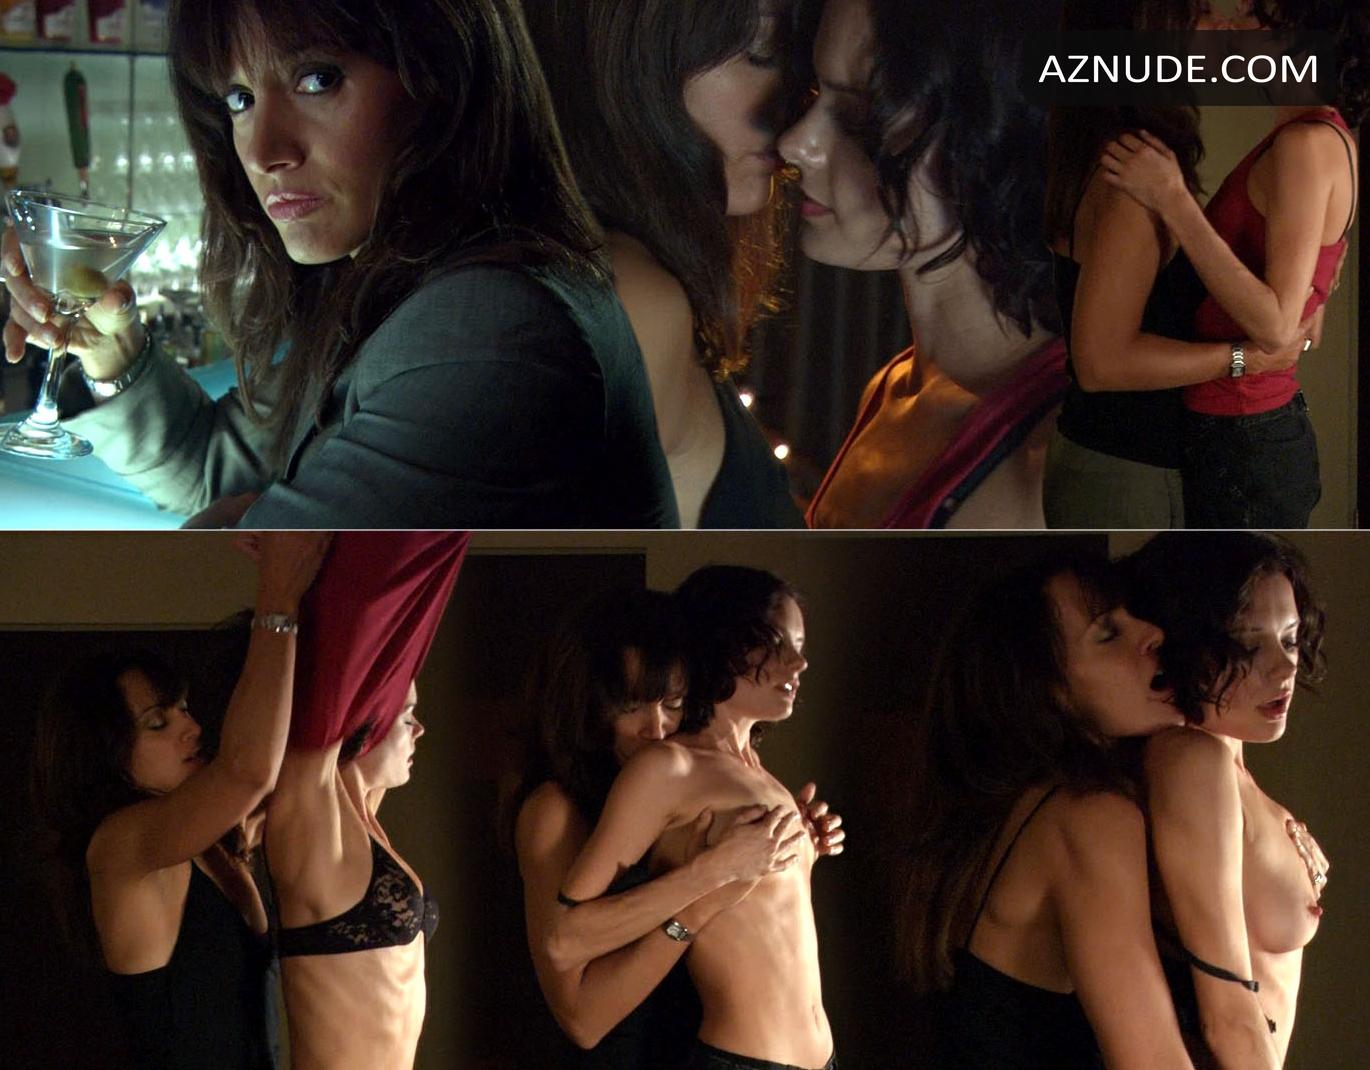 Jennifer beals nude concrete Part 10